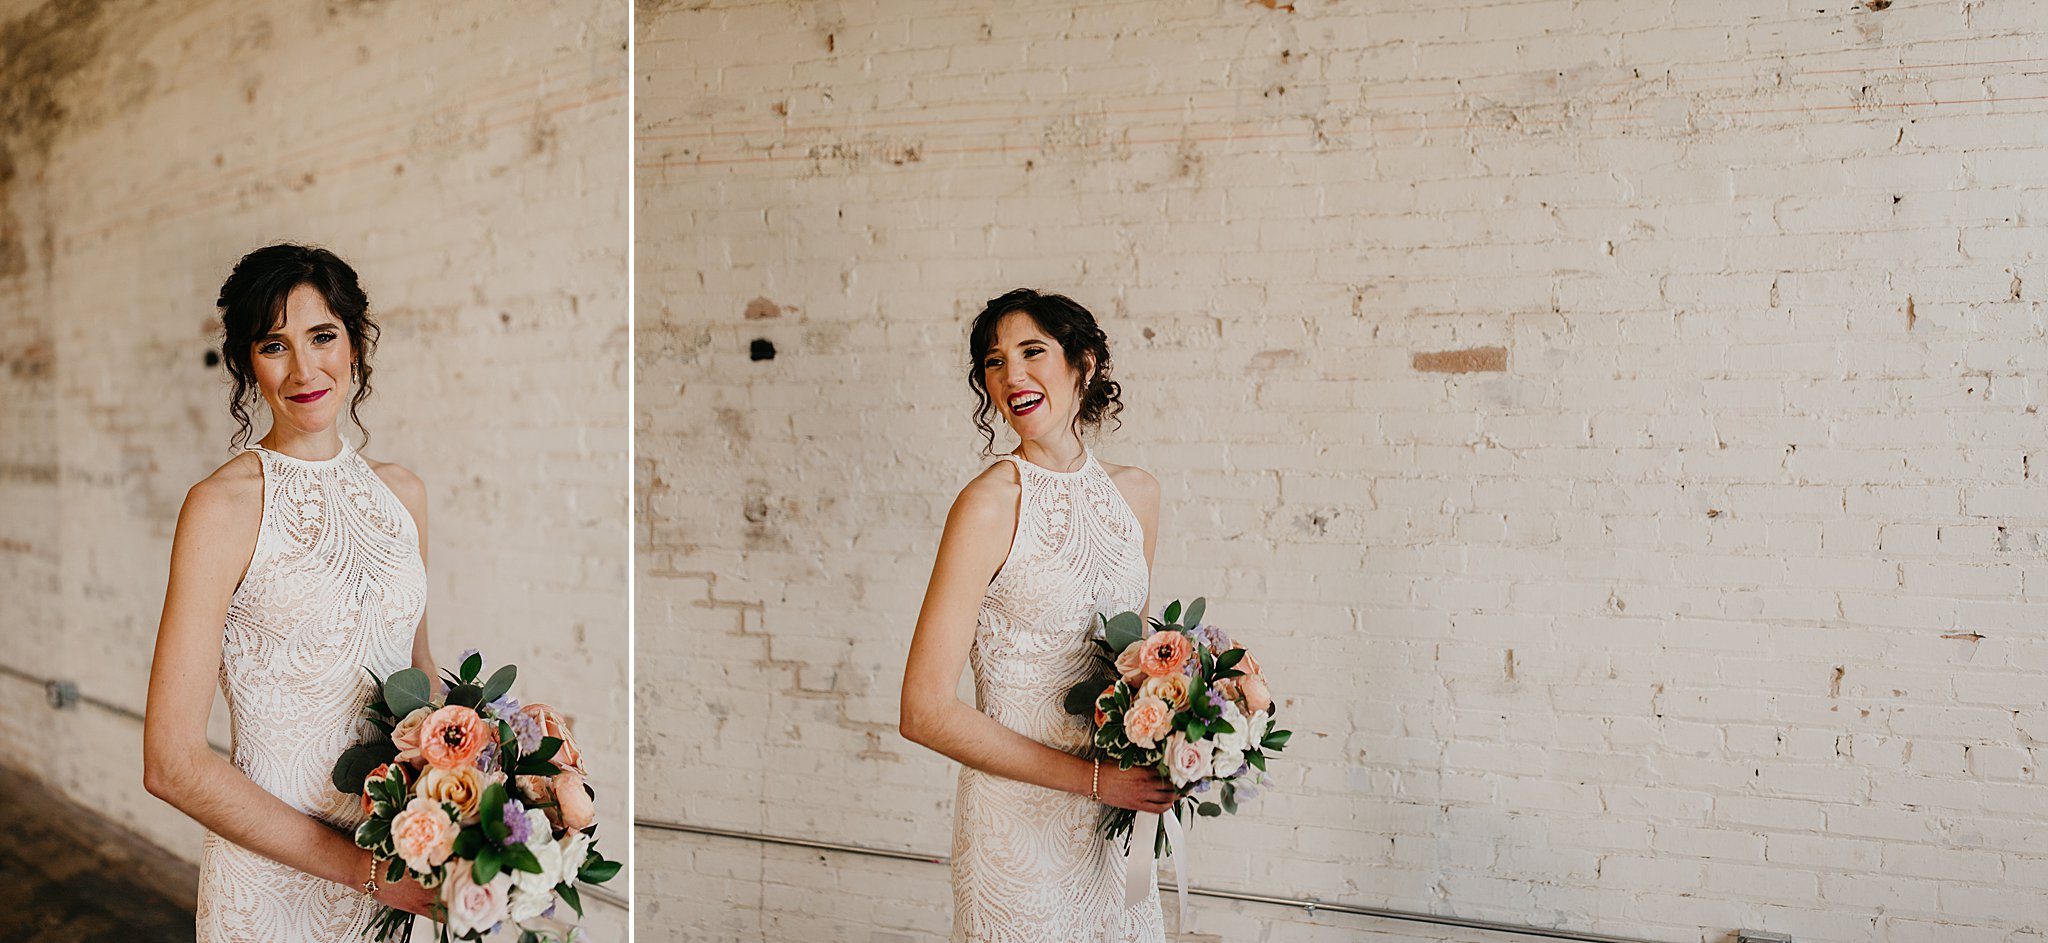 Wilderlove Co_Wedding Photographer_Industrial Wedding_Jewish Wedding_Dallas Texas Wedding_Brake & Clutch Warehouse_North Texas Photographer_0037.jpg